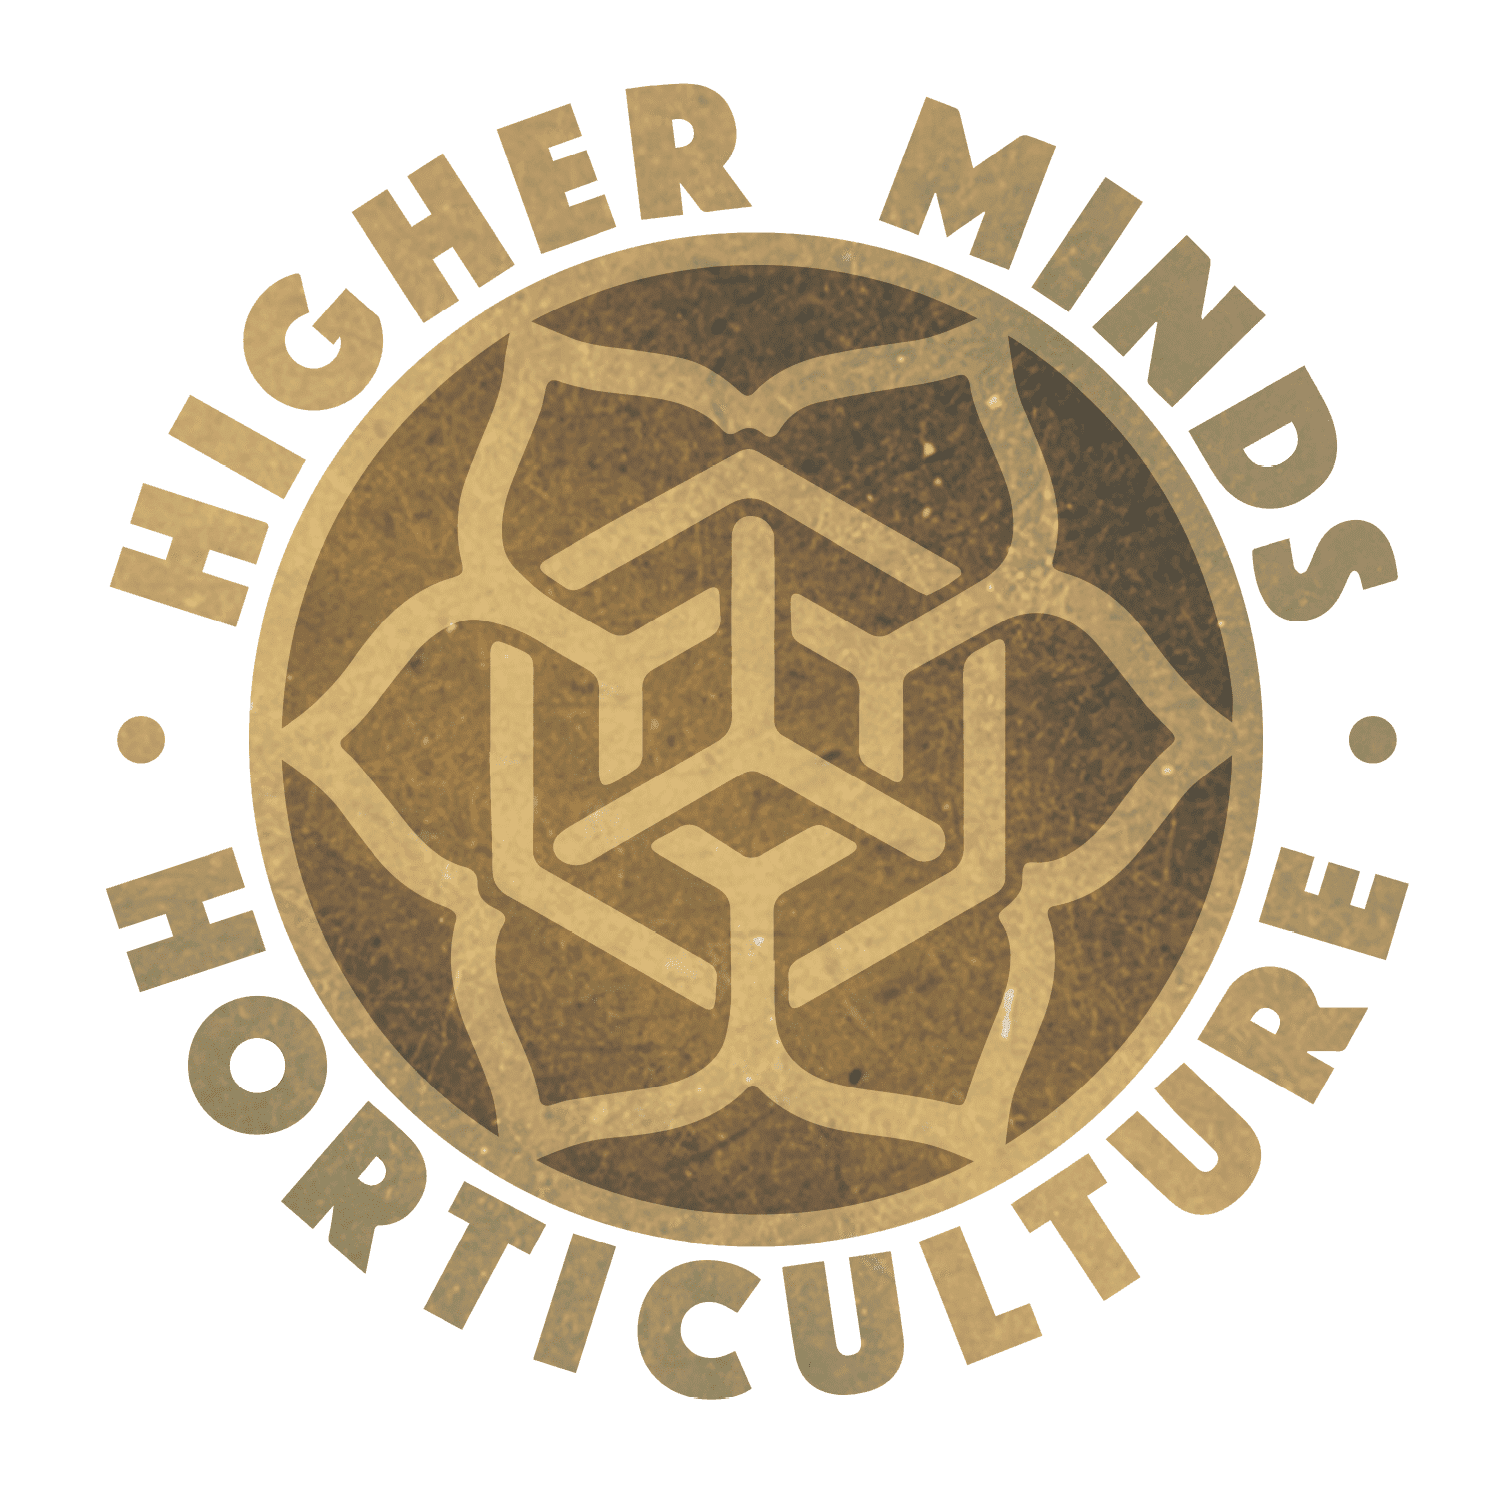 Higher Minds Horticulture